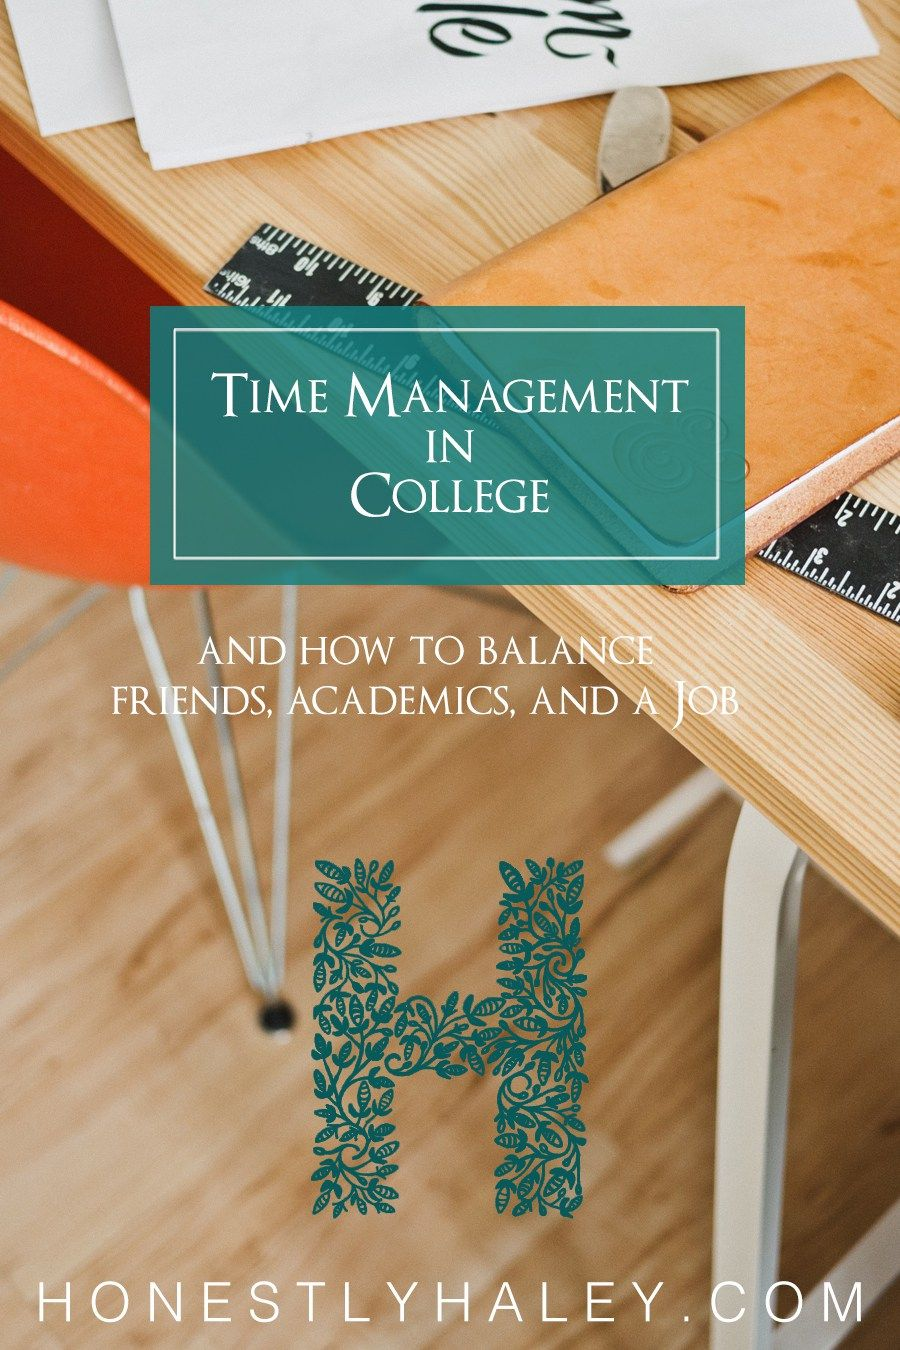 Time management in college is essential to achieve success, but that's easier said than done. What can you do to balance your crazy schedule? Read on!